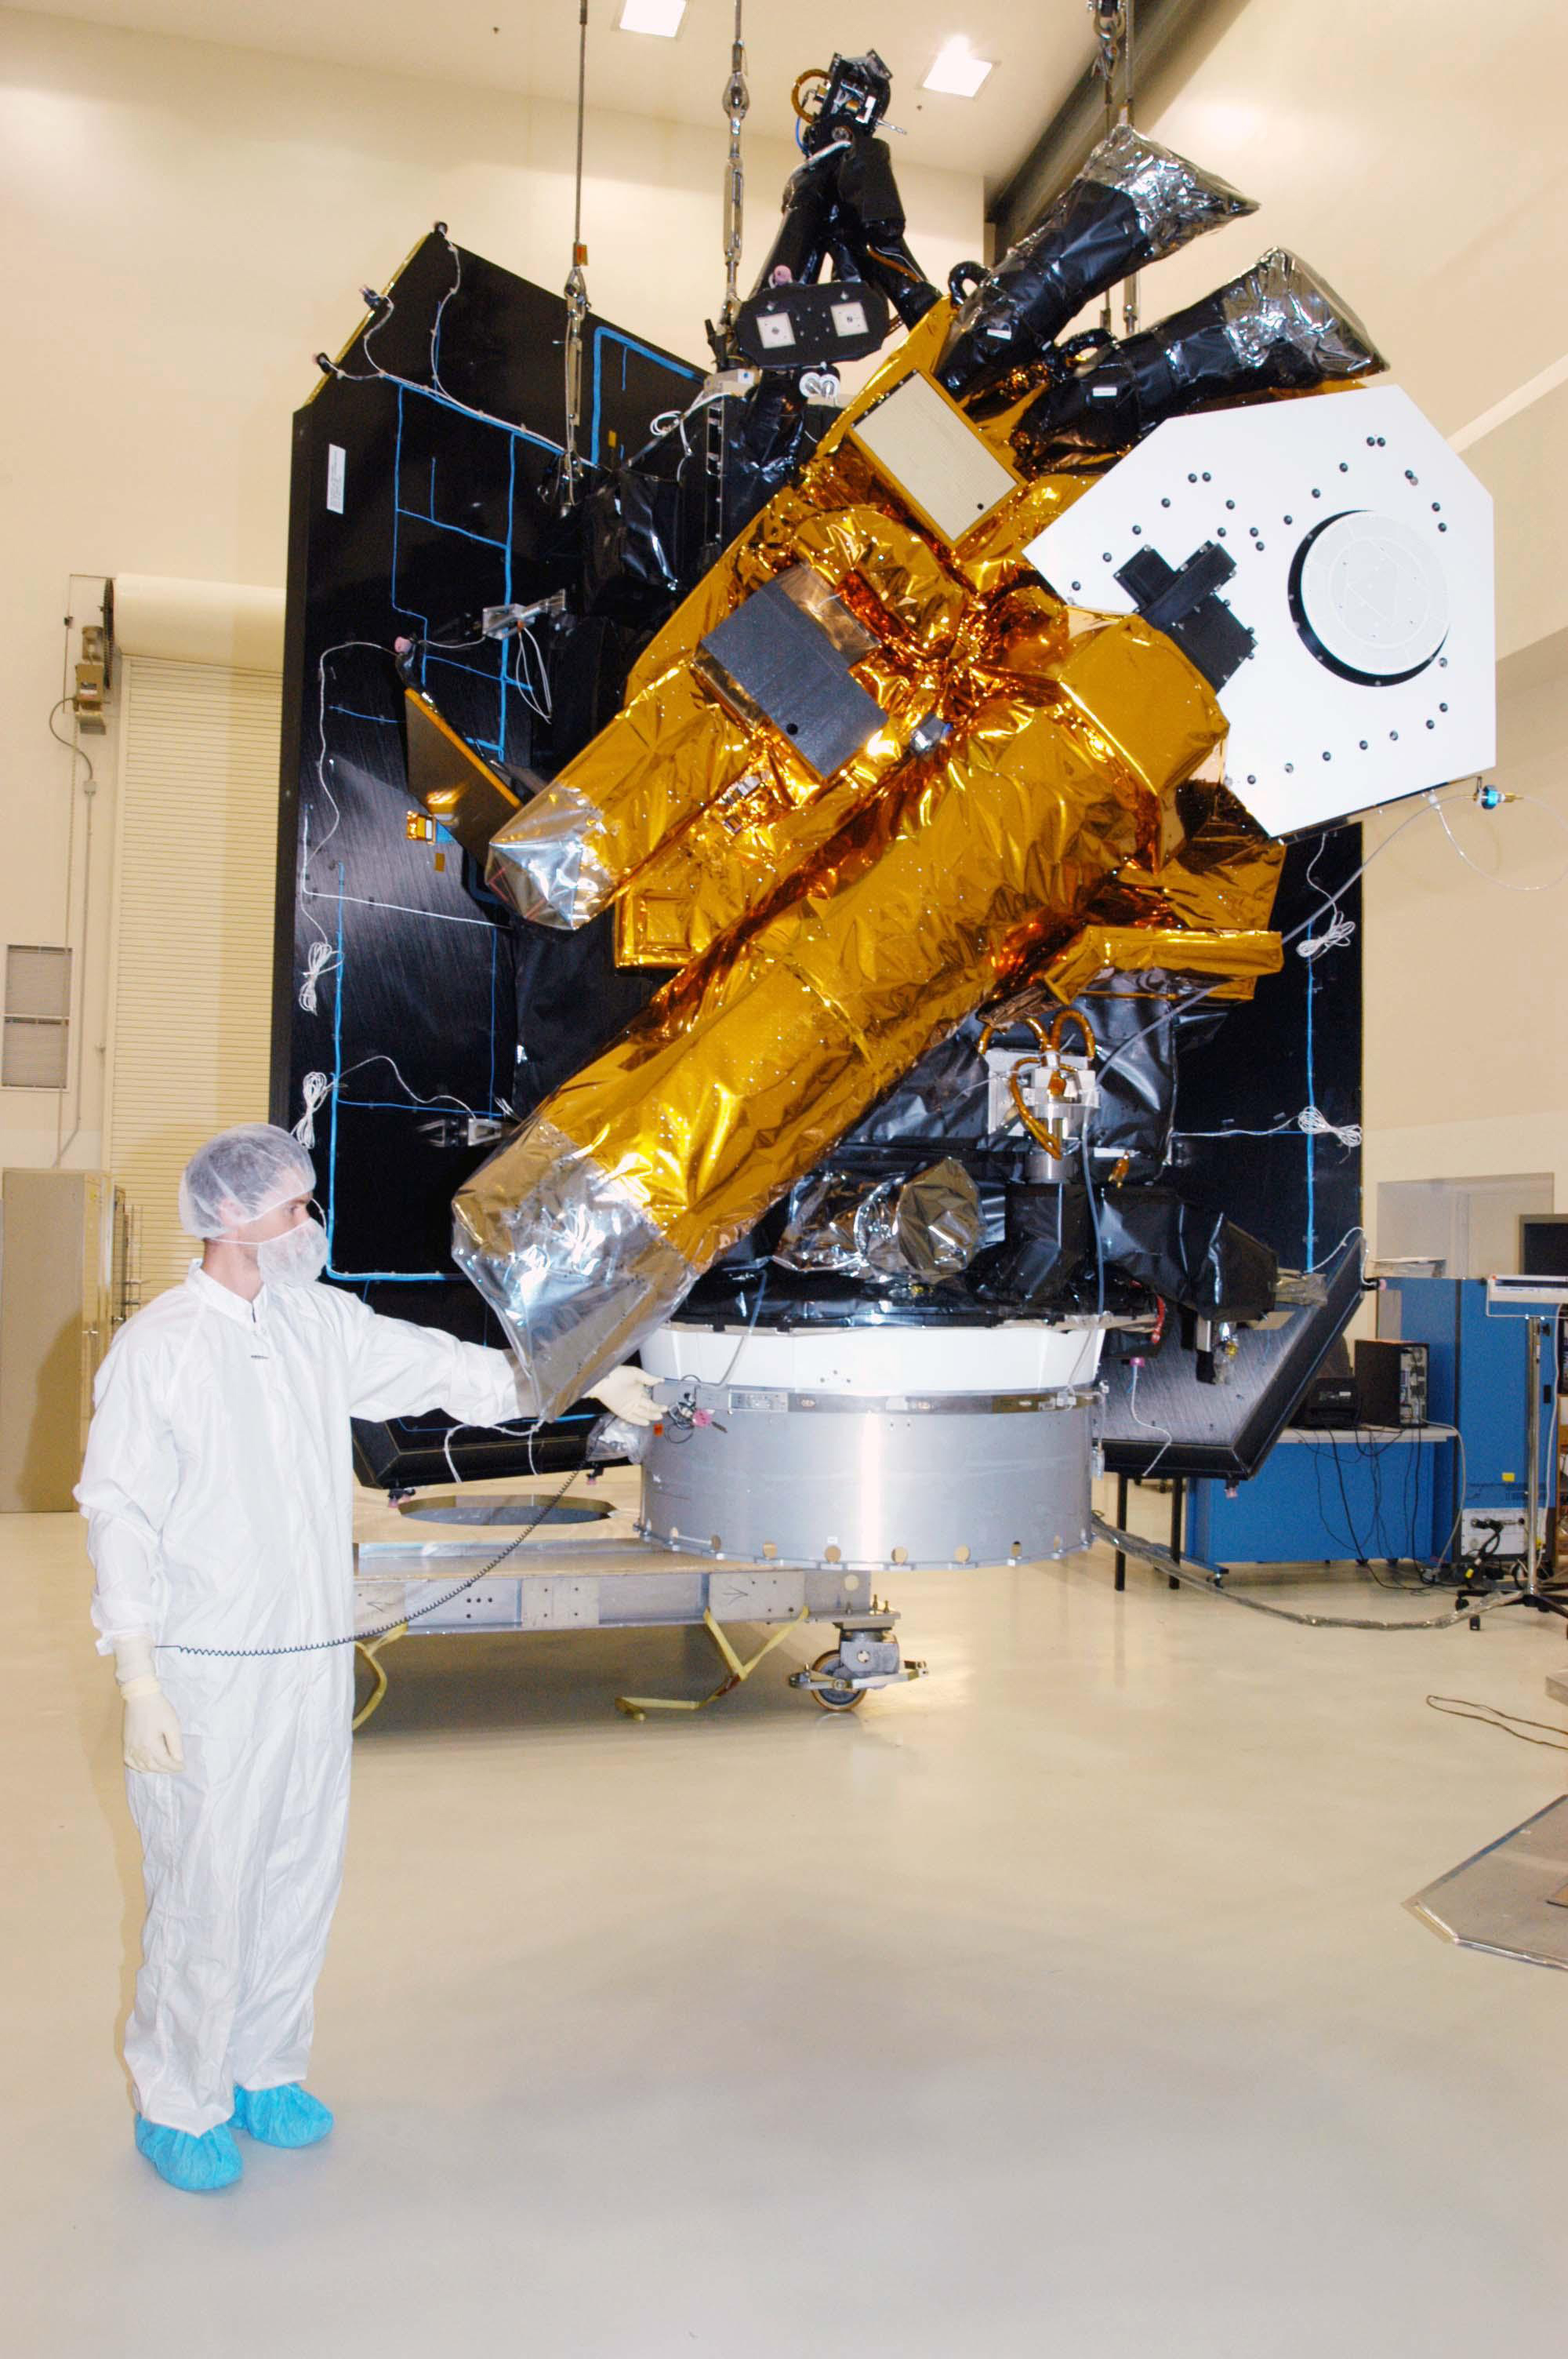 2005 deep impact space probe - photo #17